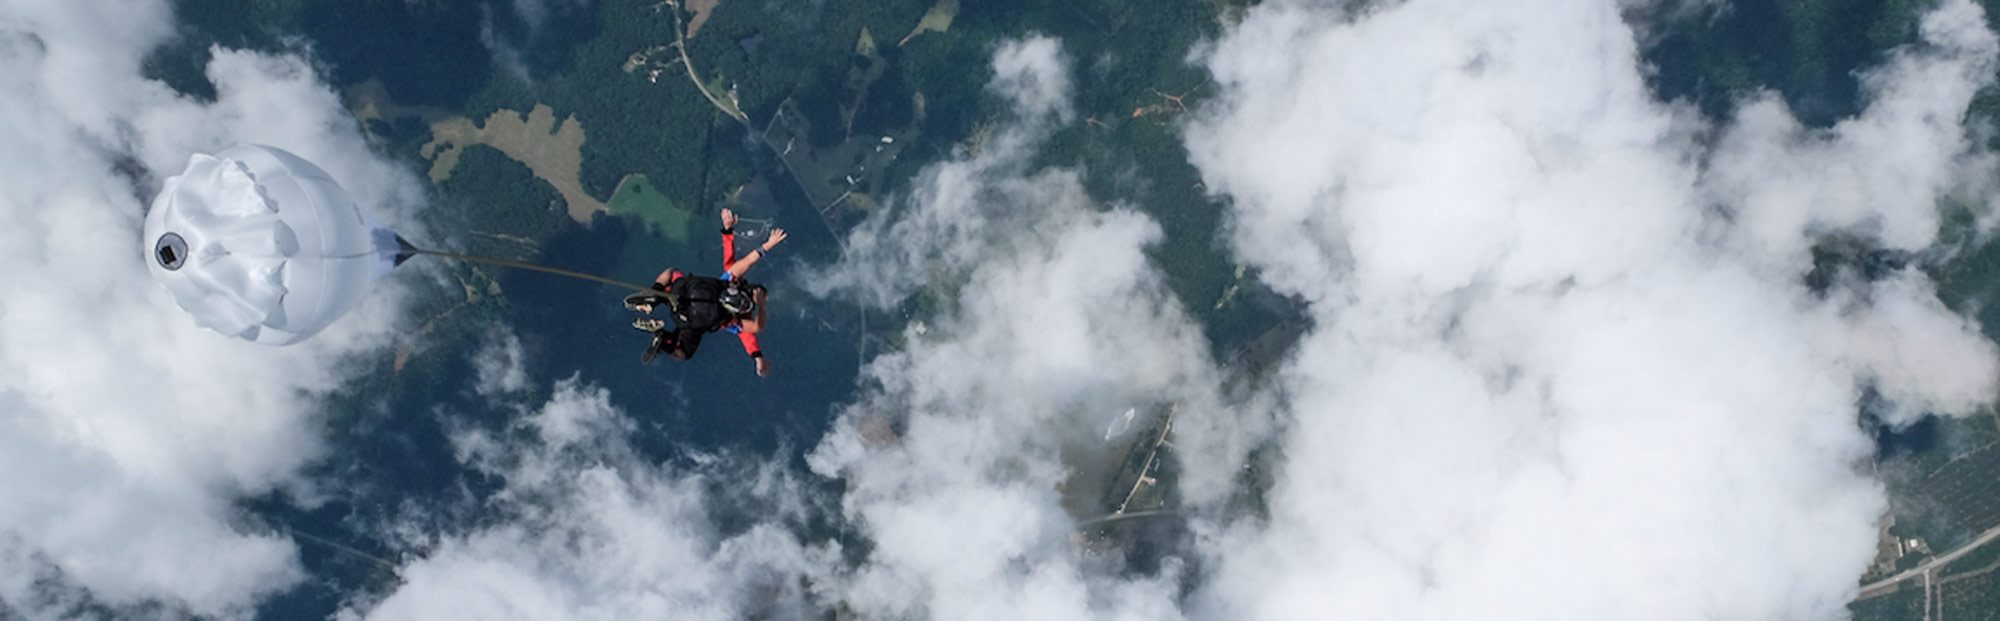 The Dilemma of Tandem Skydive Pricing - DropZone Marketing